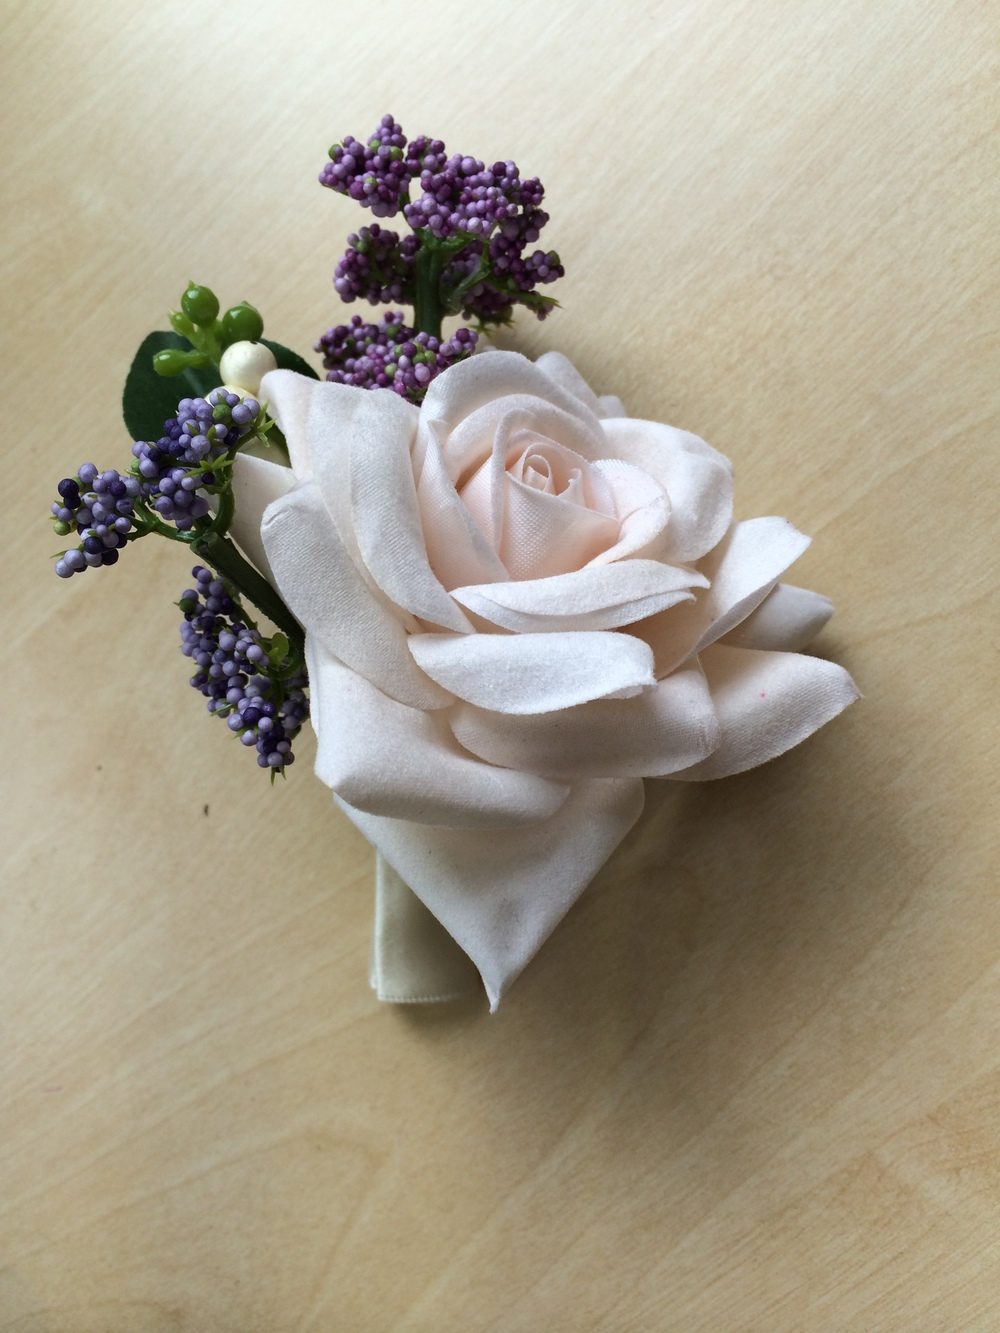 Ladies Corsage - Large Ivory Rose With Hedgerow Berries